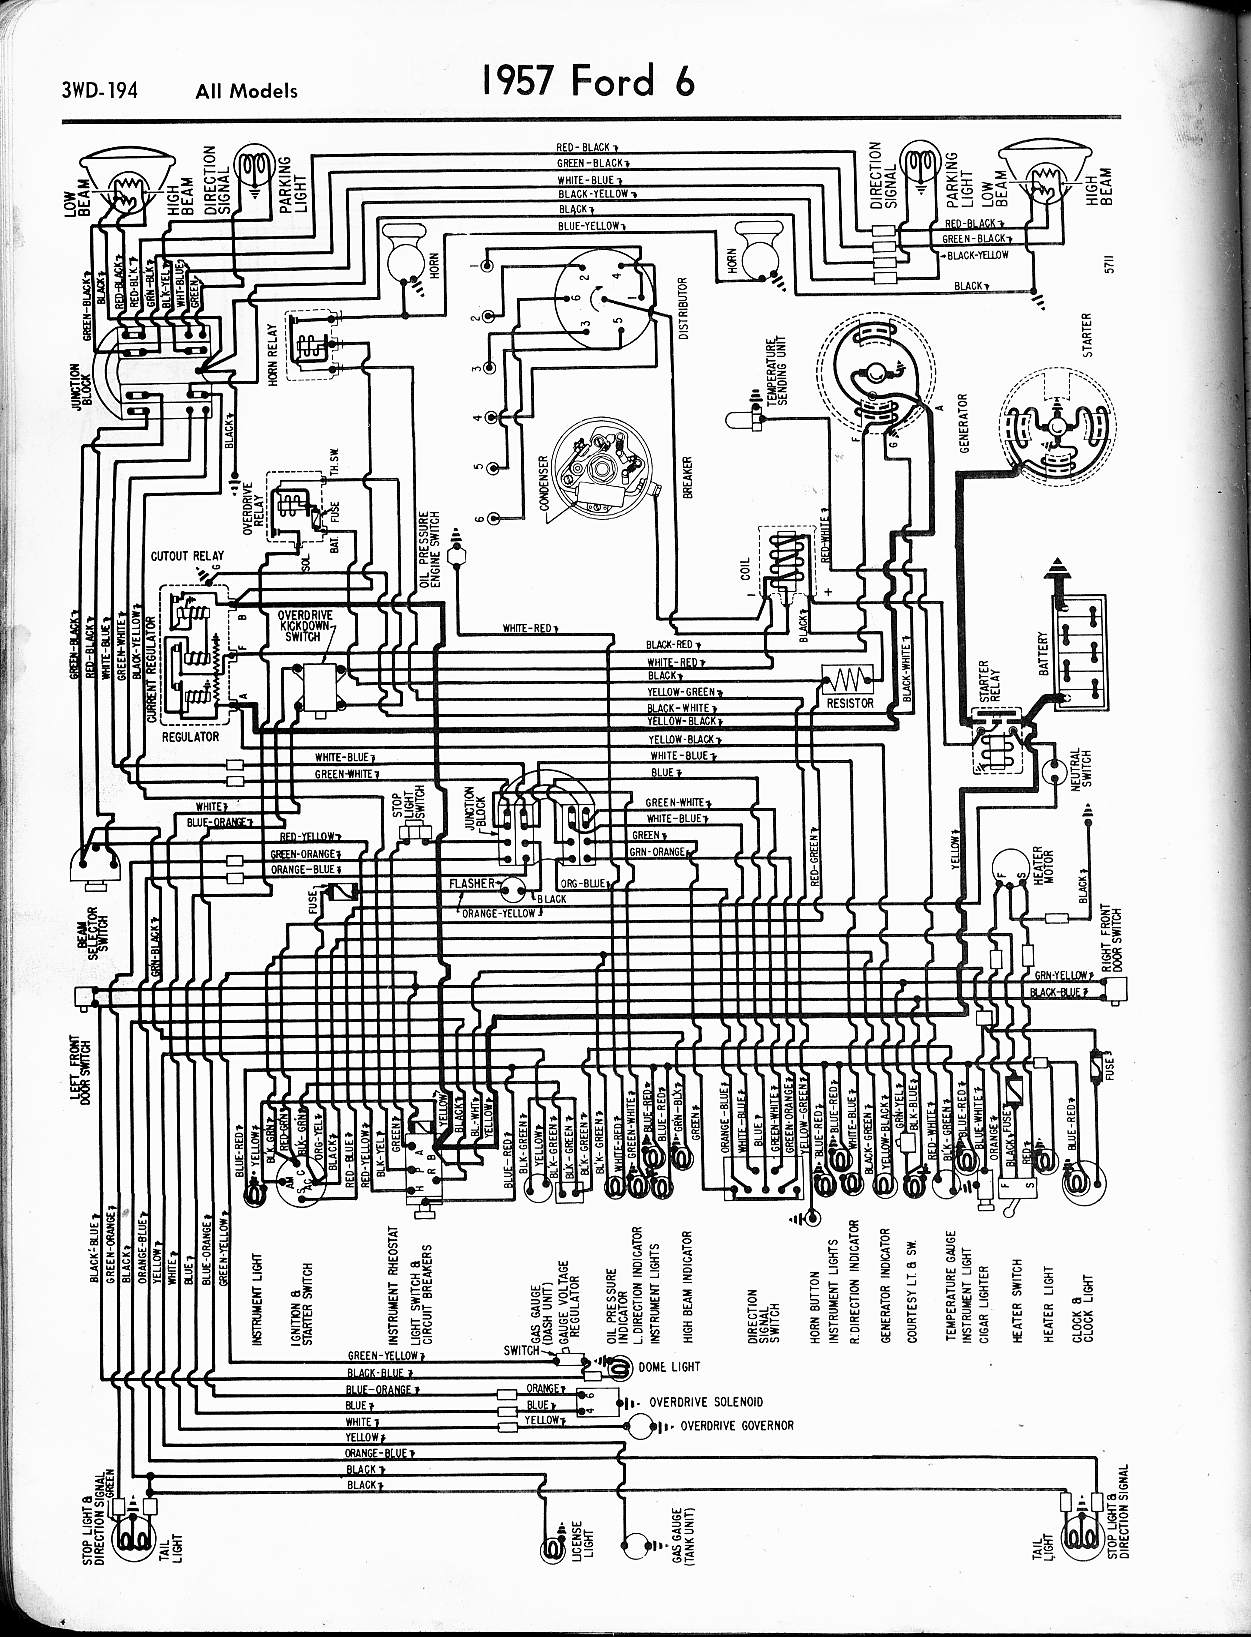 MWire5765 194 1955 ford wiring diagram 2014 dodge 2500 wiring diagram \u2022 free Ford 545C Tractor at n-0.co